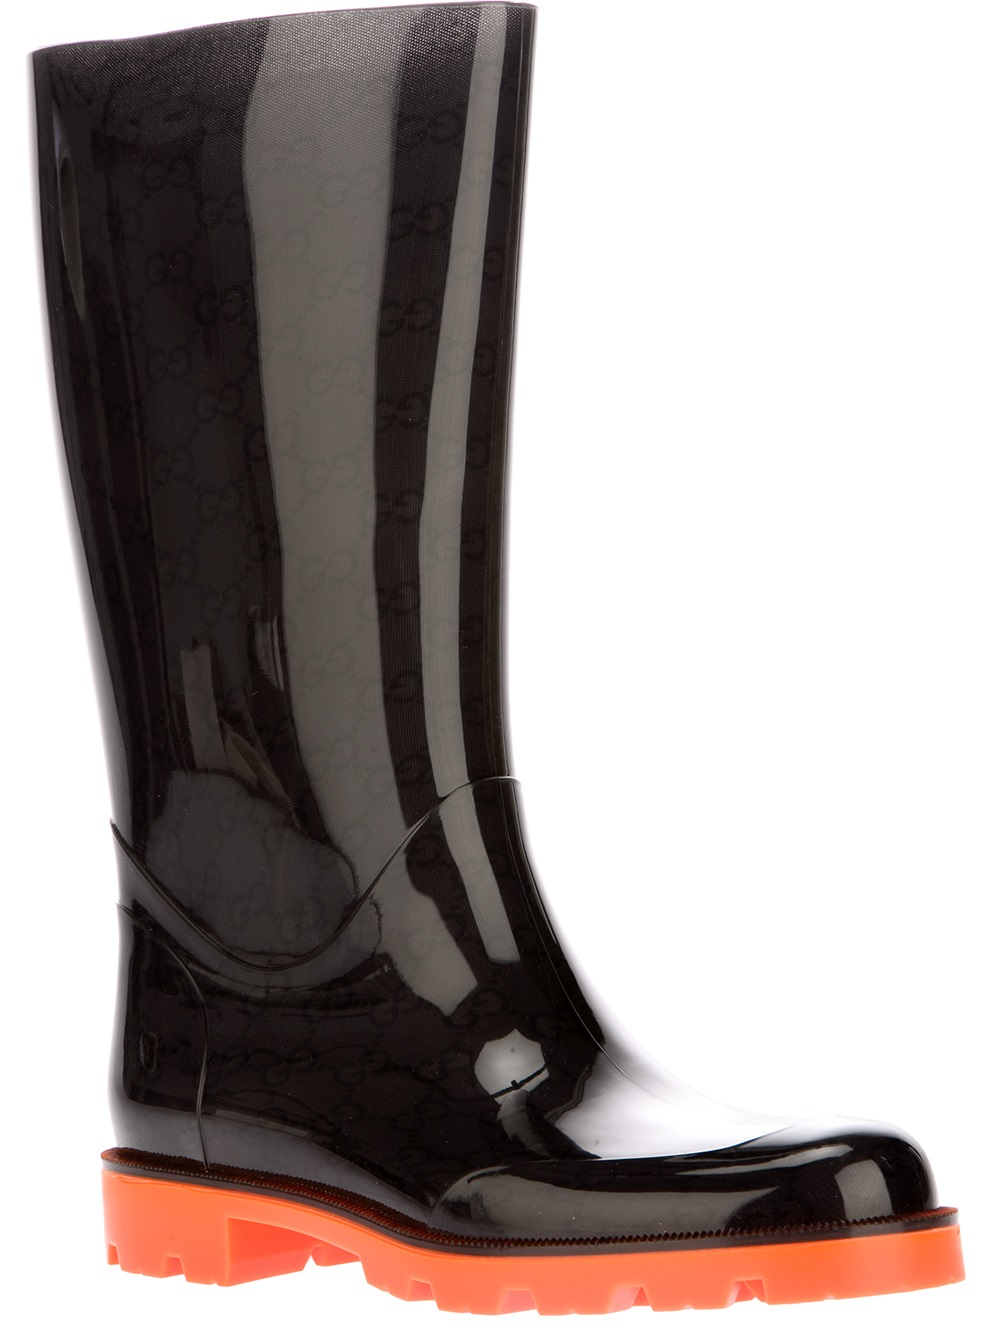 Luxury GUCCI New Designer GG Rain Shoes Boots Sz 39  9 Womens Made In Italy